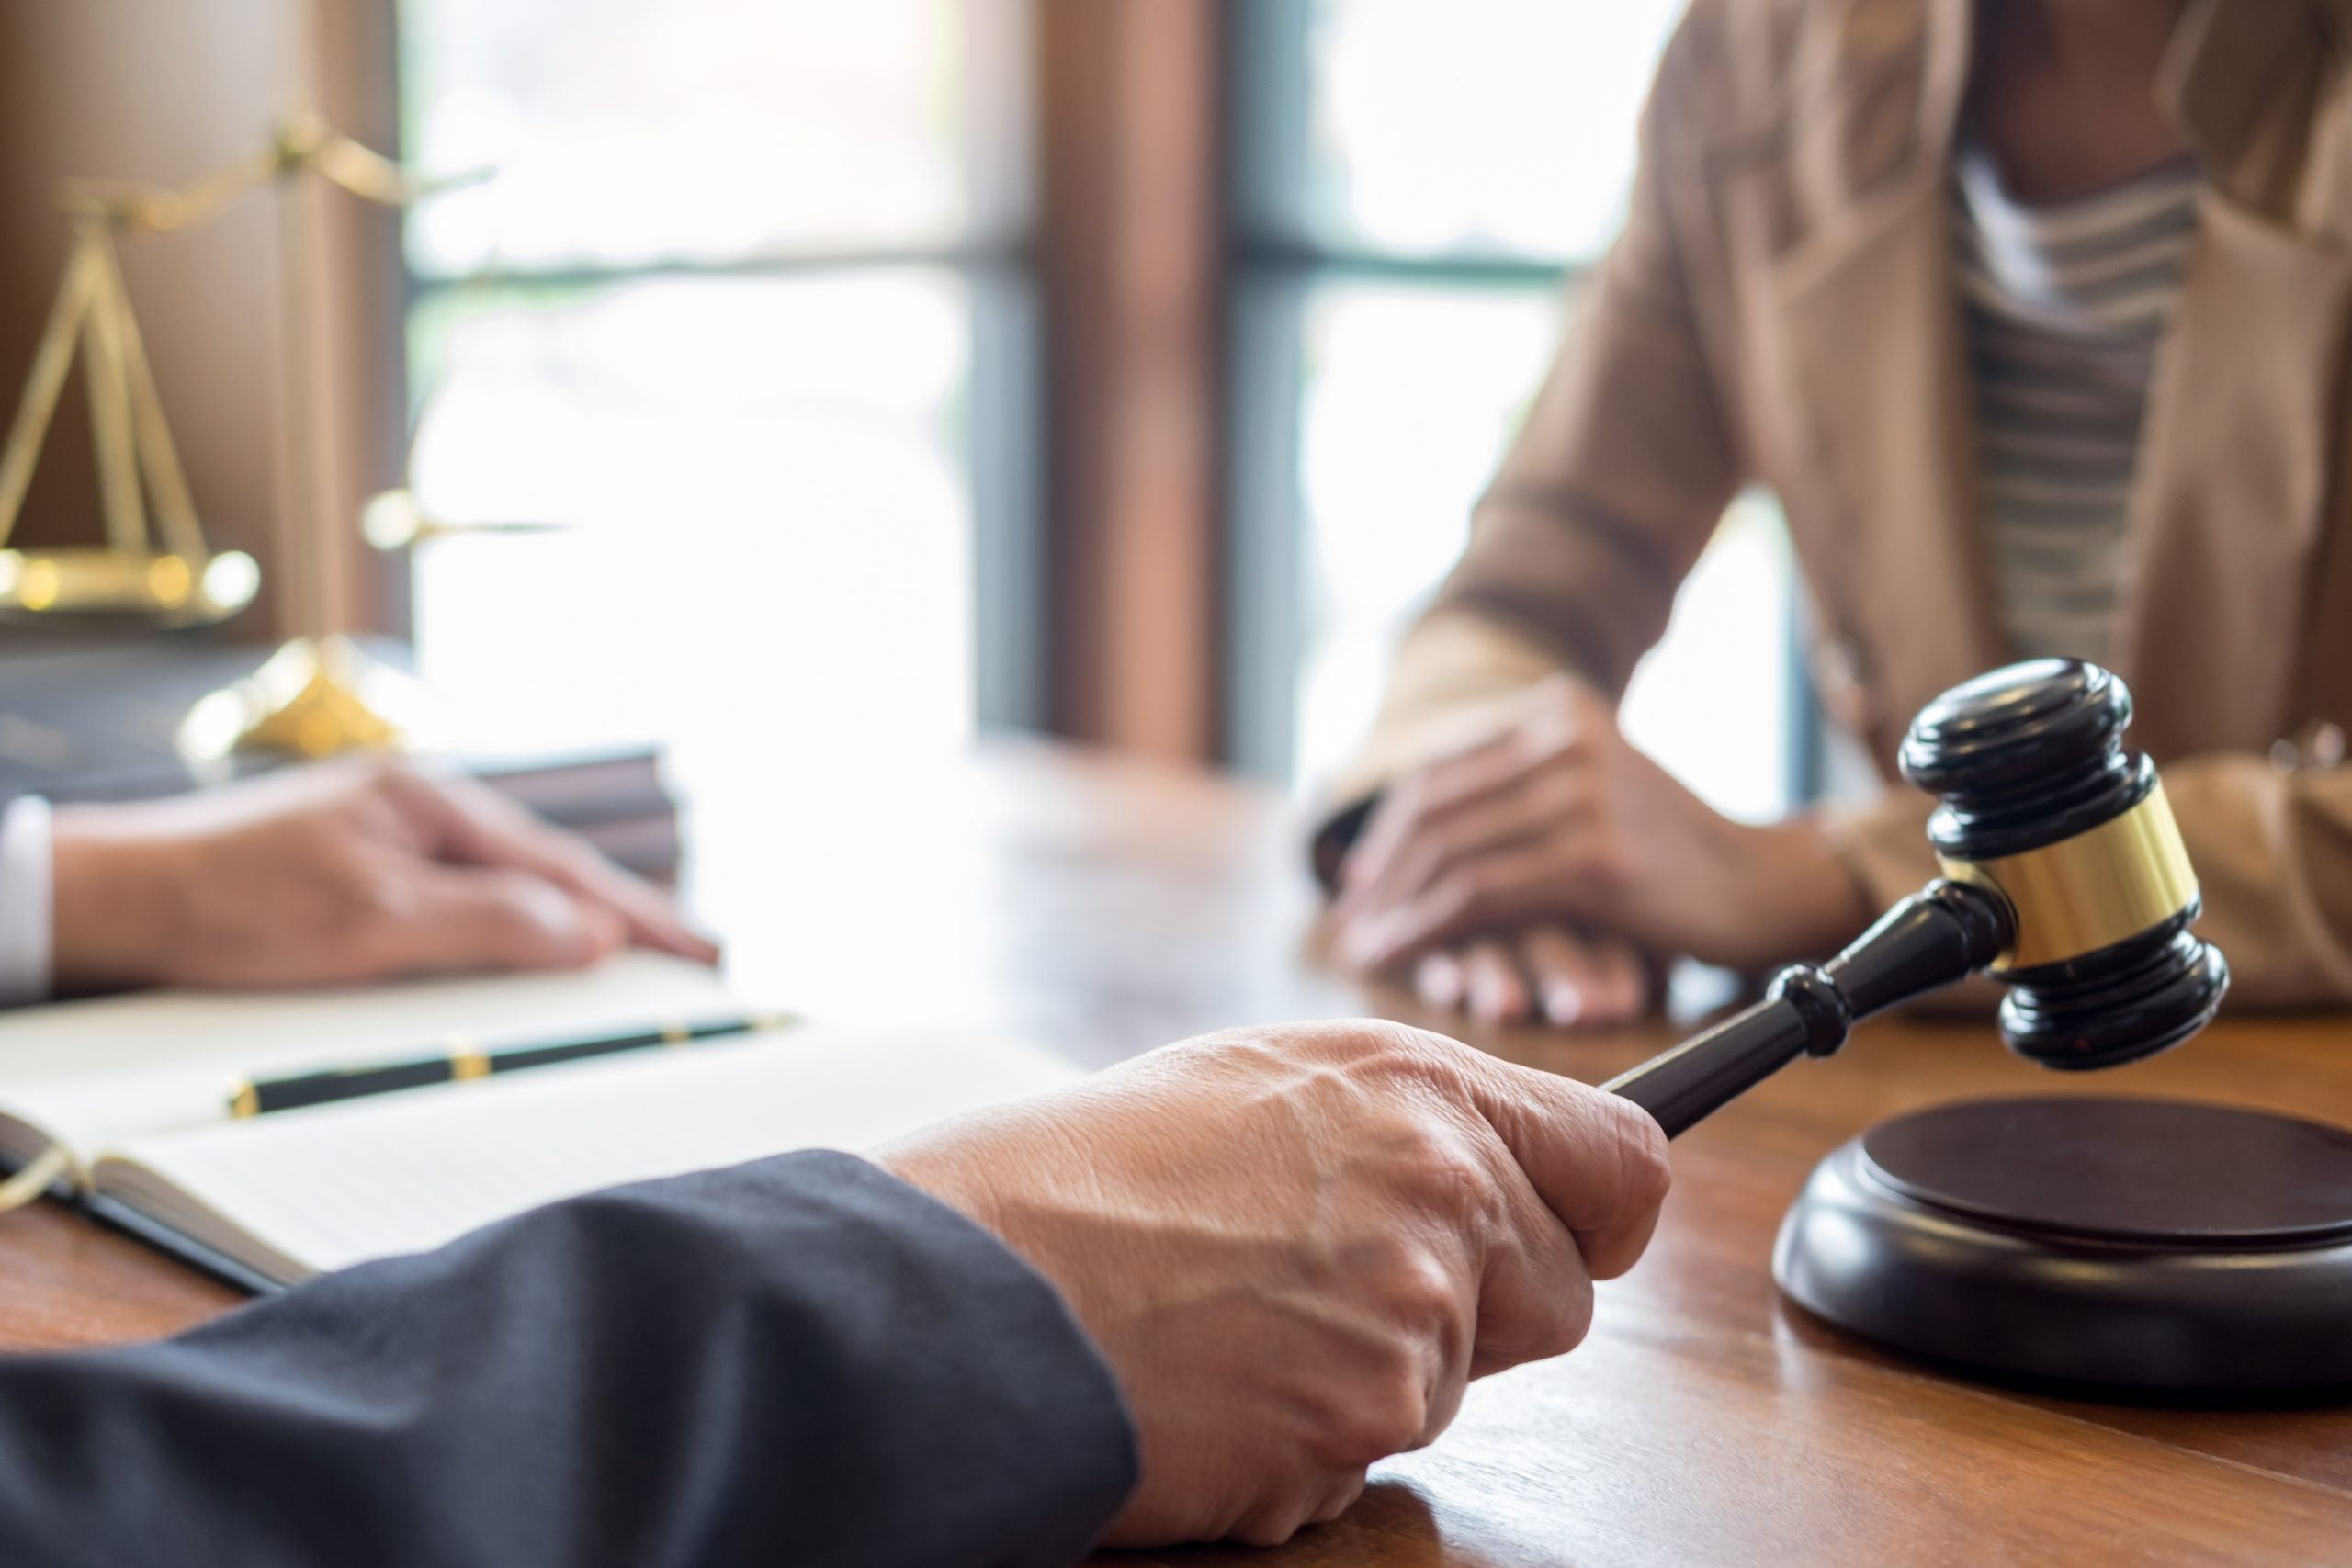 Learn more about drafting a will for your estate planning and any other legal needs with Dunham Legal.